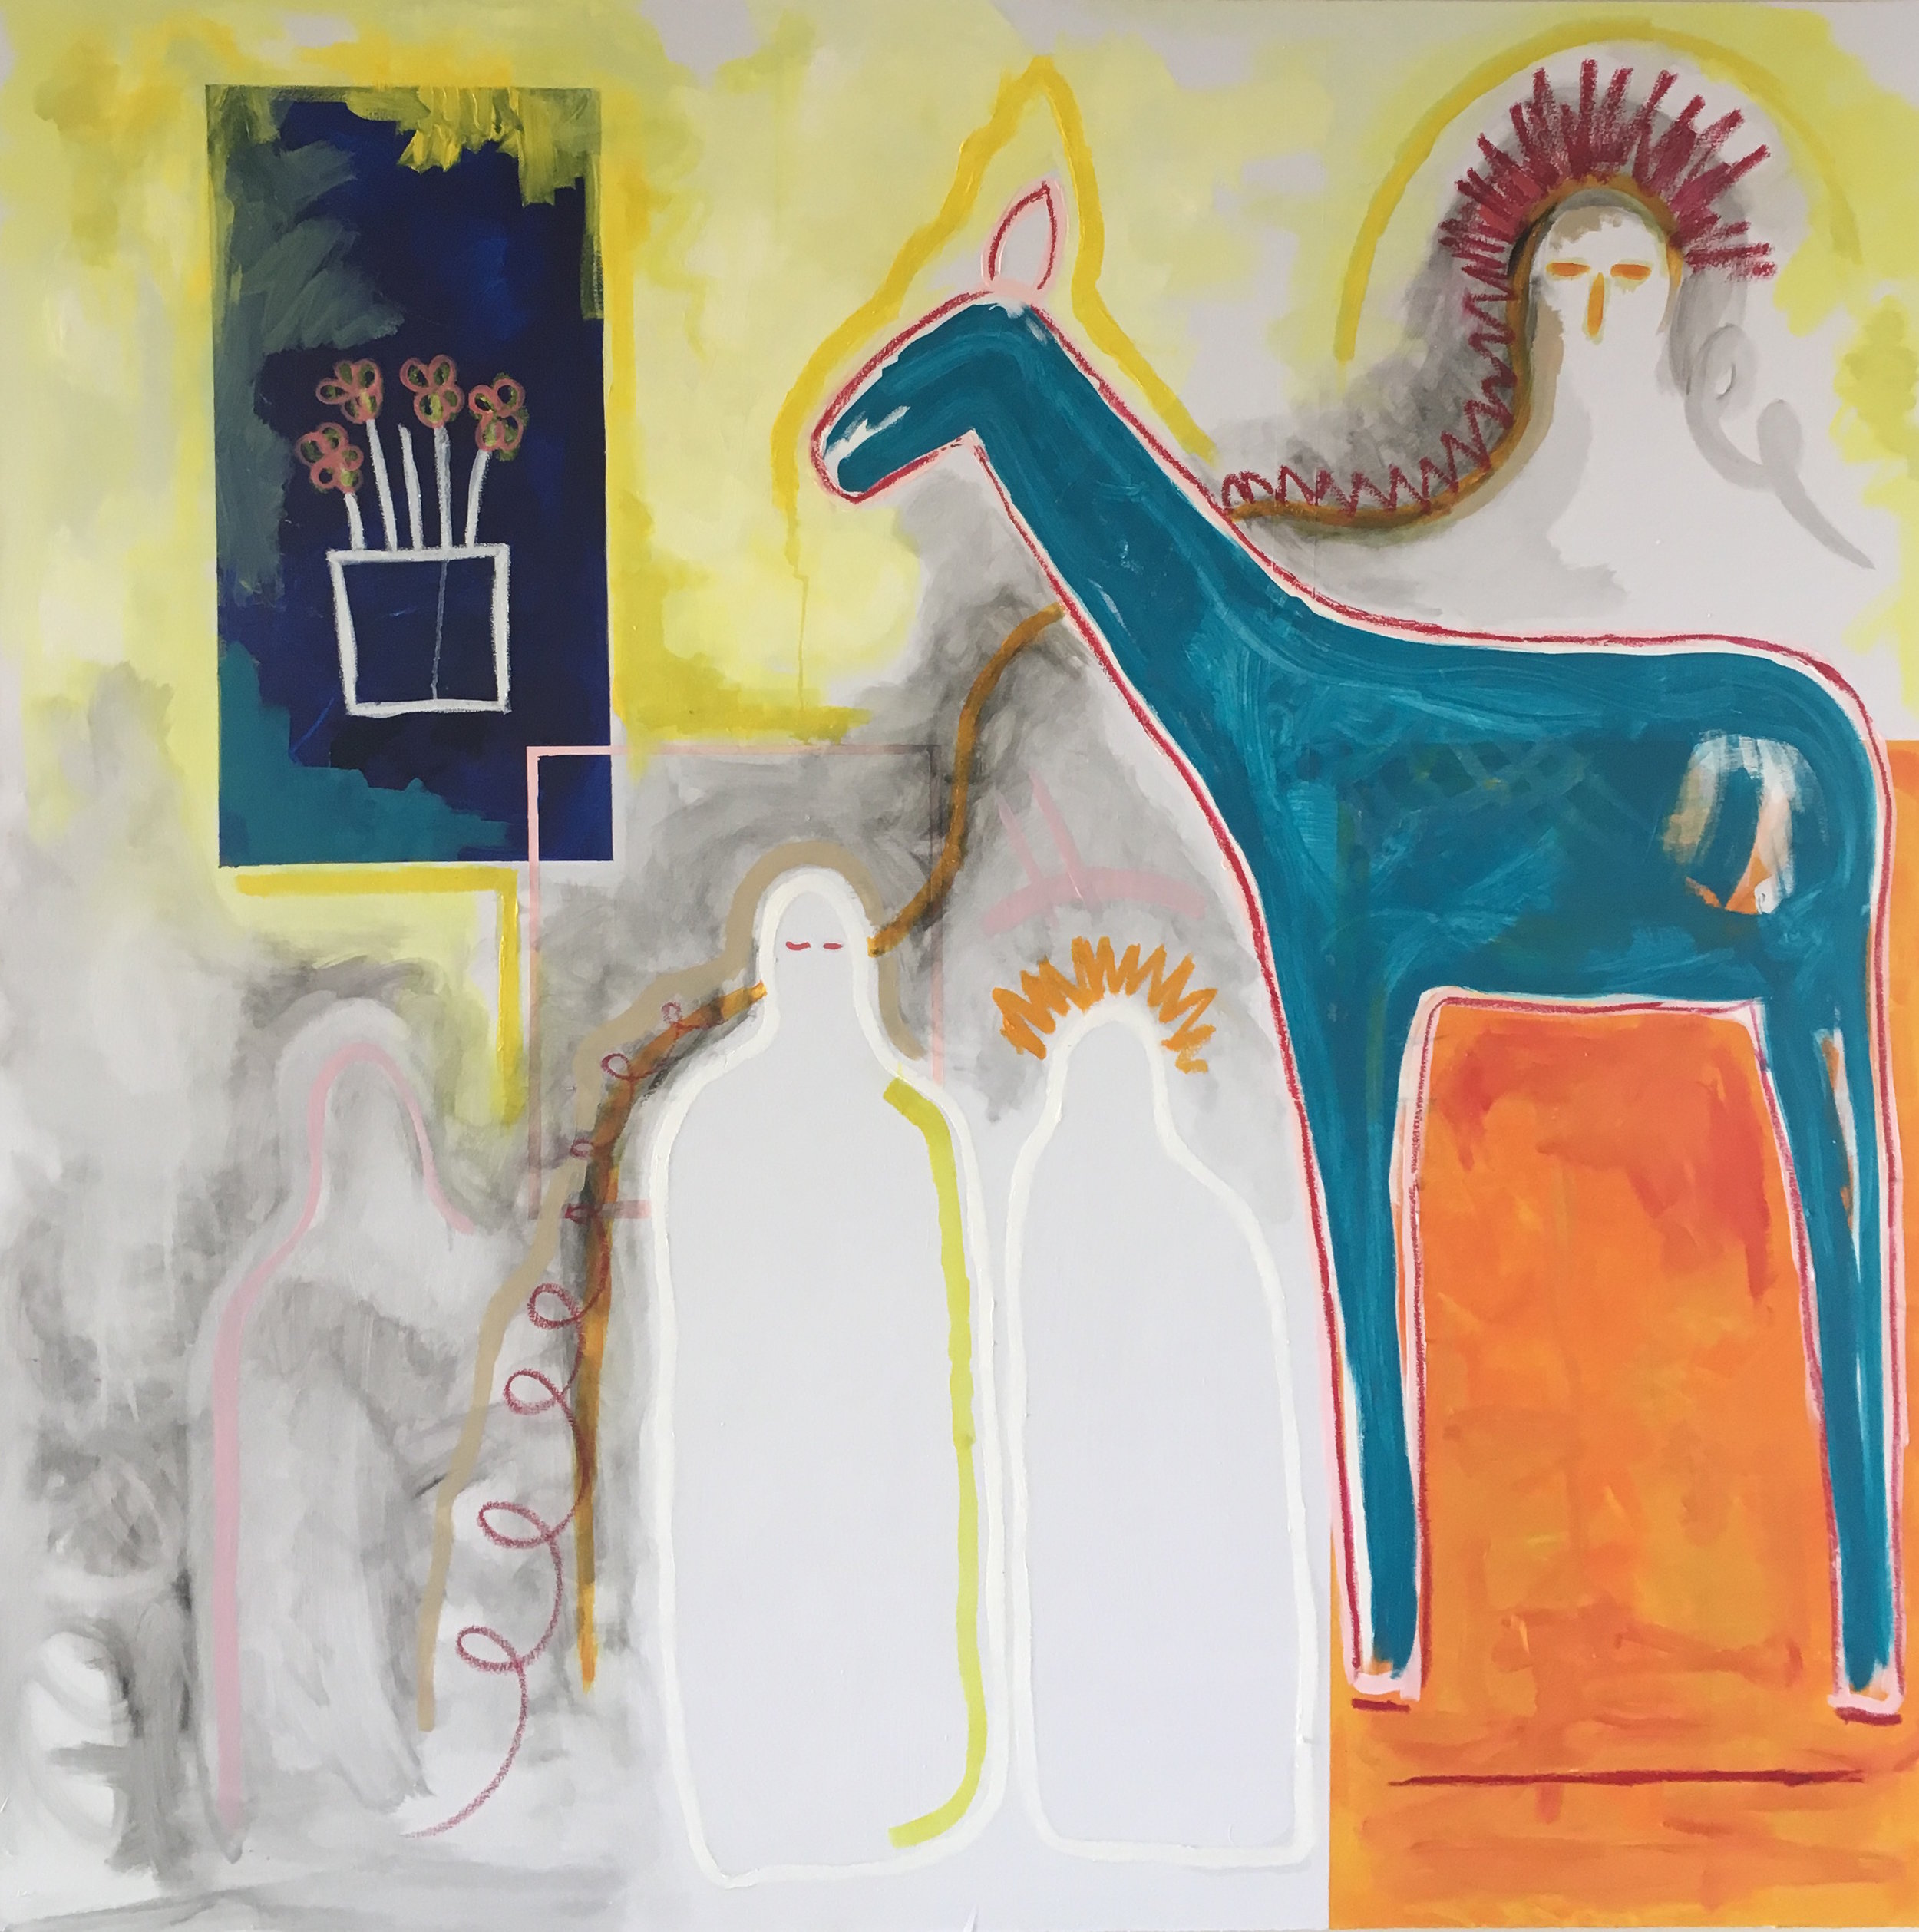 'It's Not a Camel', Oil and acrylic on canvas, 180x180cm